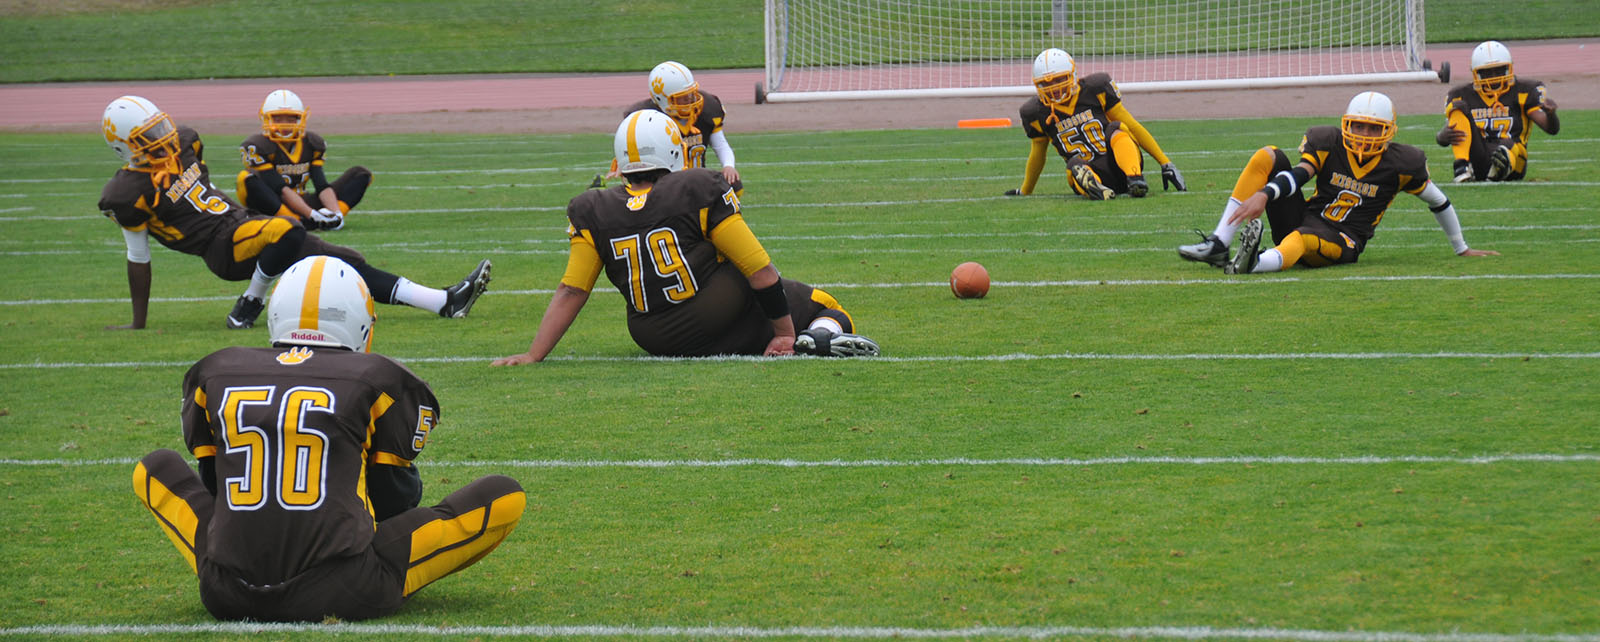 Mission High varsity football players stretch before game. Photo by: Alejandro B. Rosas